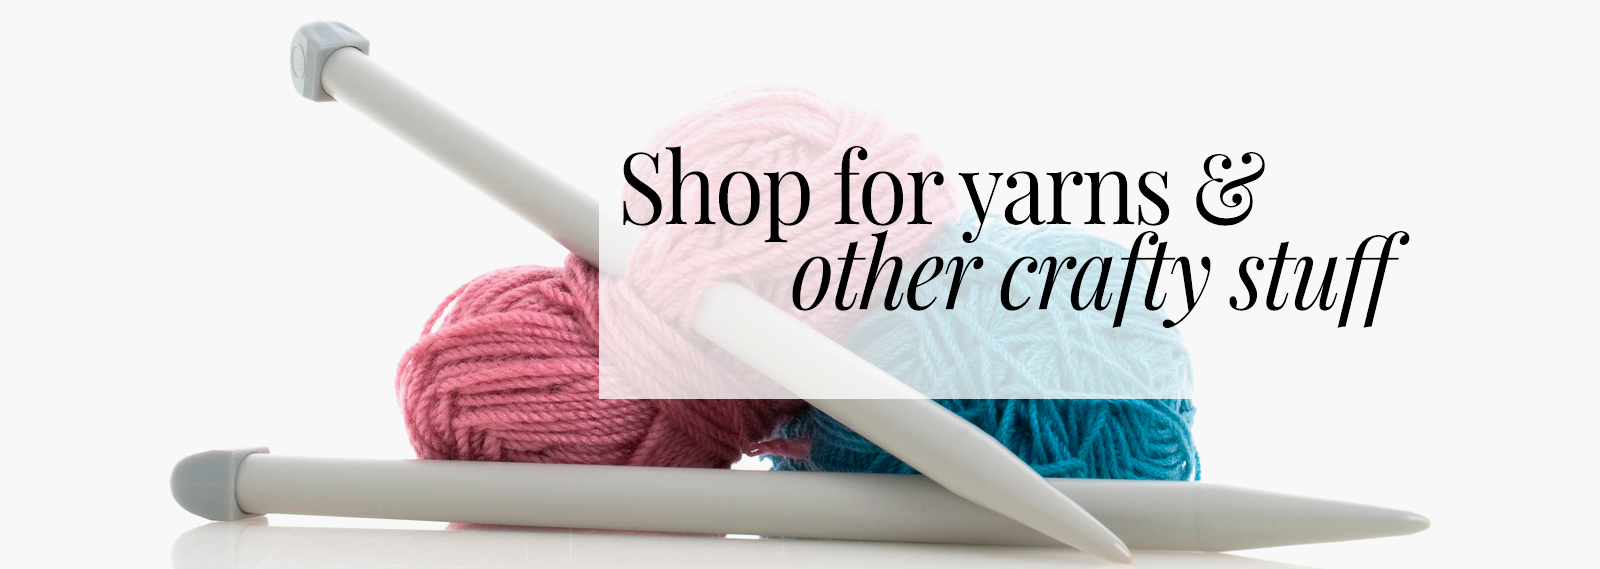 Shop from the Yarn Shop